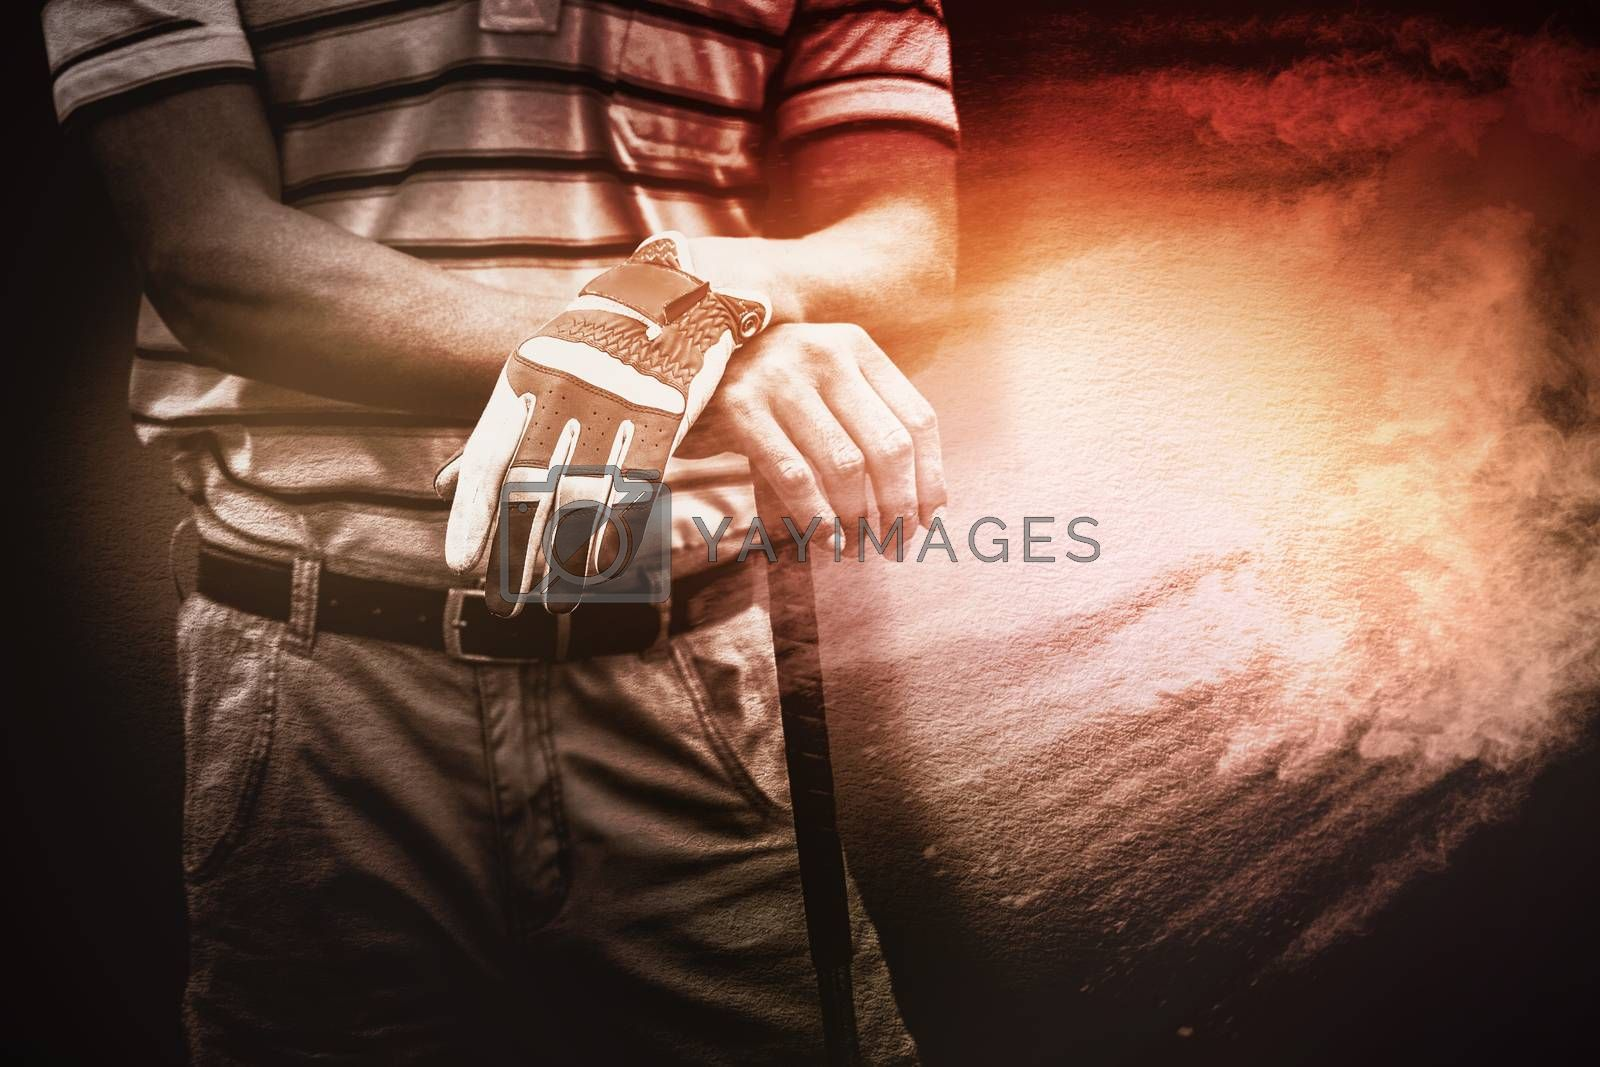 Composite image of man holding a golf club by Wavebreakmedia